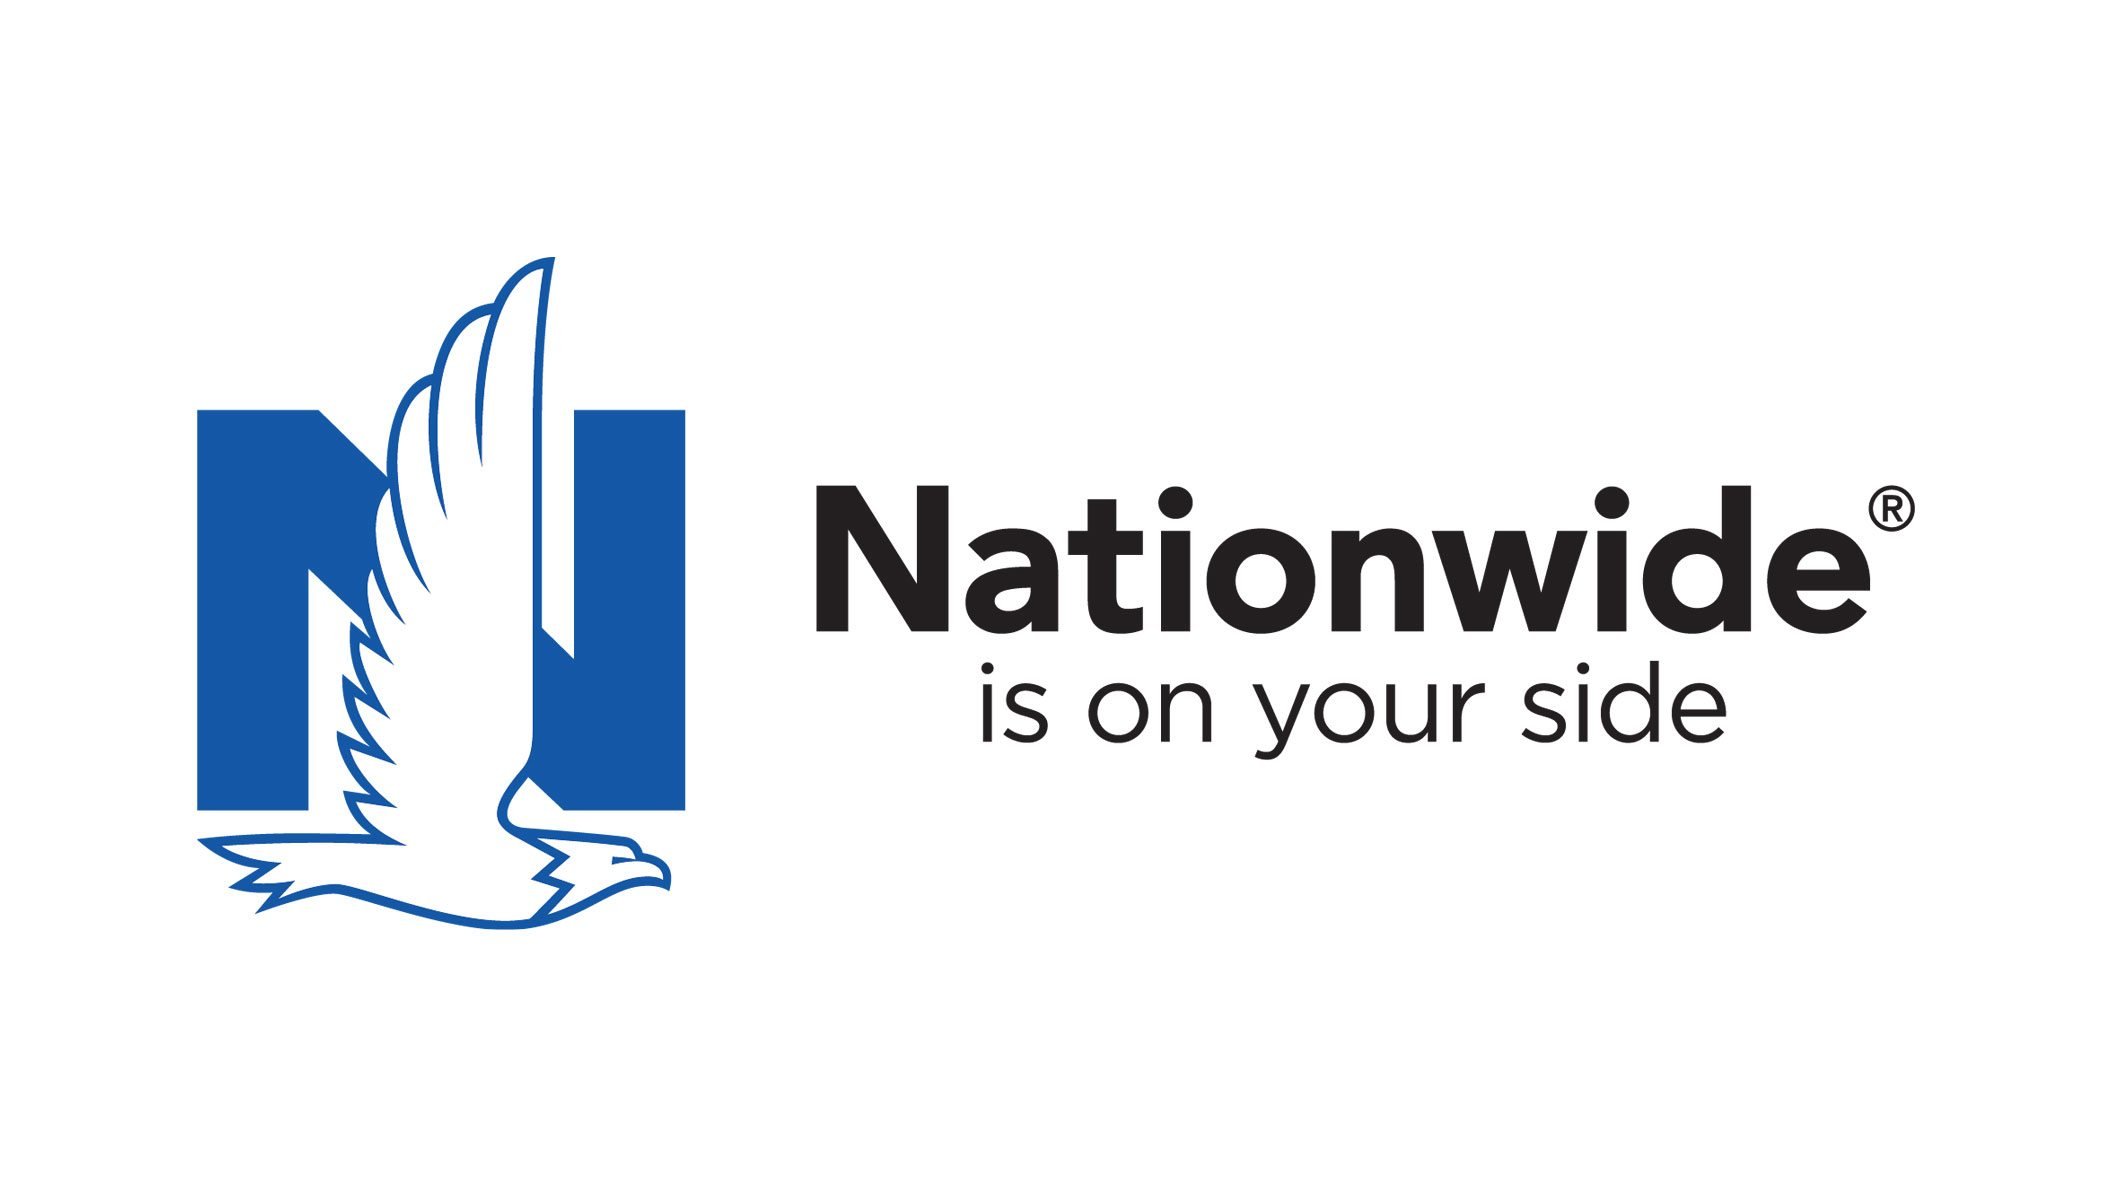 nationwide-logo-horizontal.jpg